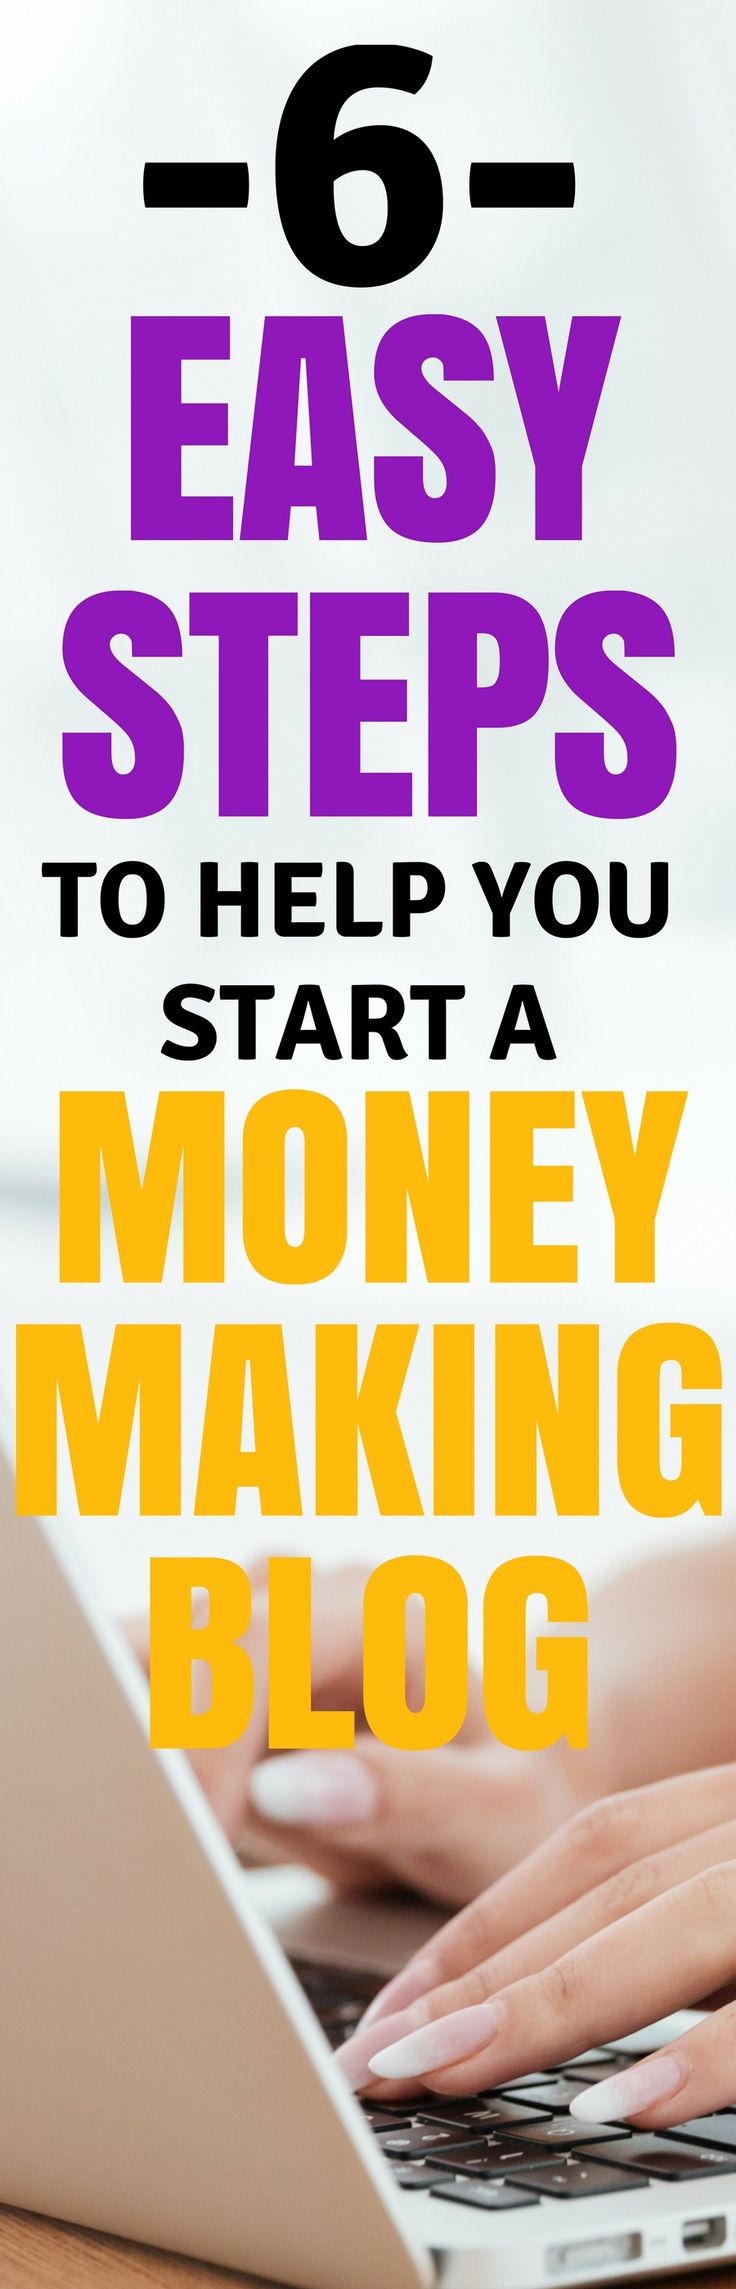 How to start a blog to make money online. This is the best guide for new bloggers who really want to get started blogging. Pinning this for sure!